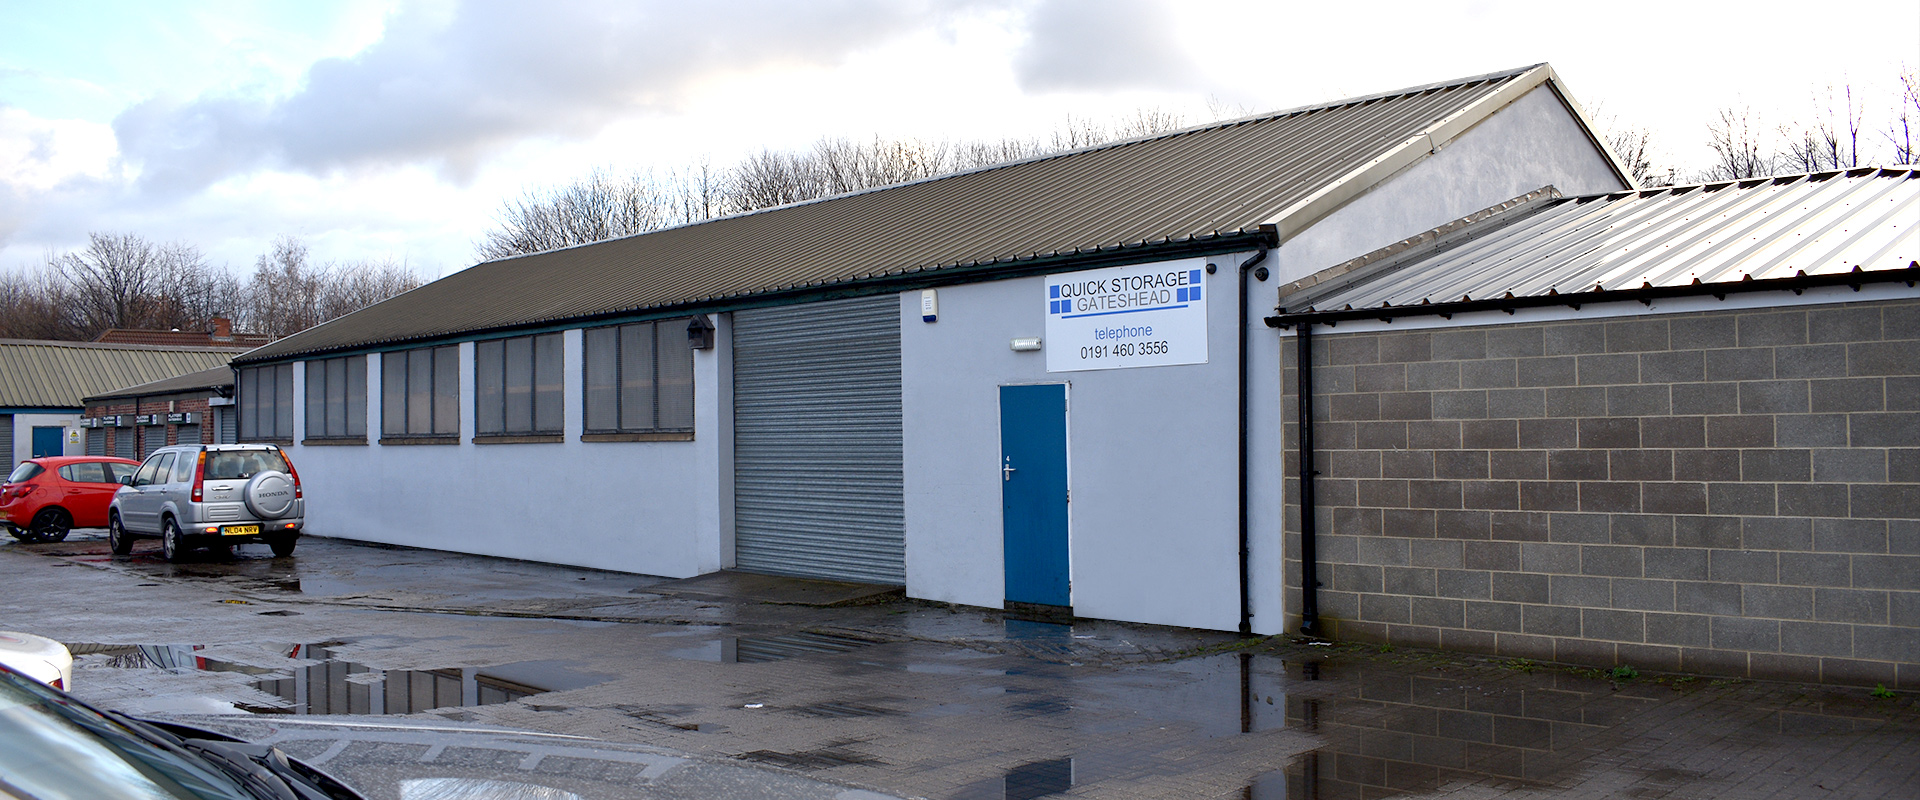 OUR STORAGE UNITS START AT JUST £8.75 PER WEEK WITH NO HIDDEN CHARGES